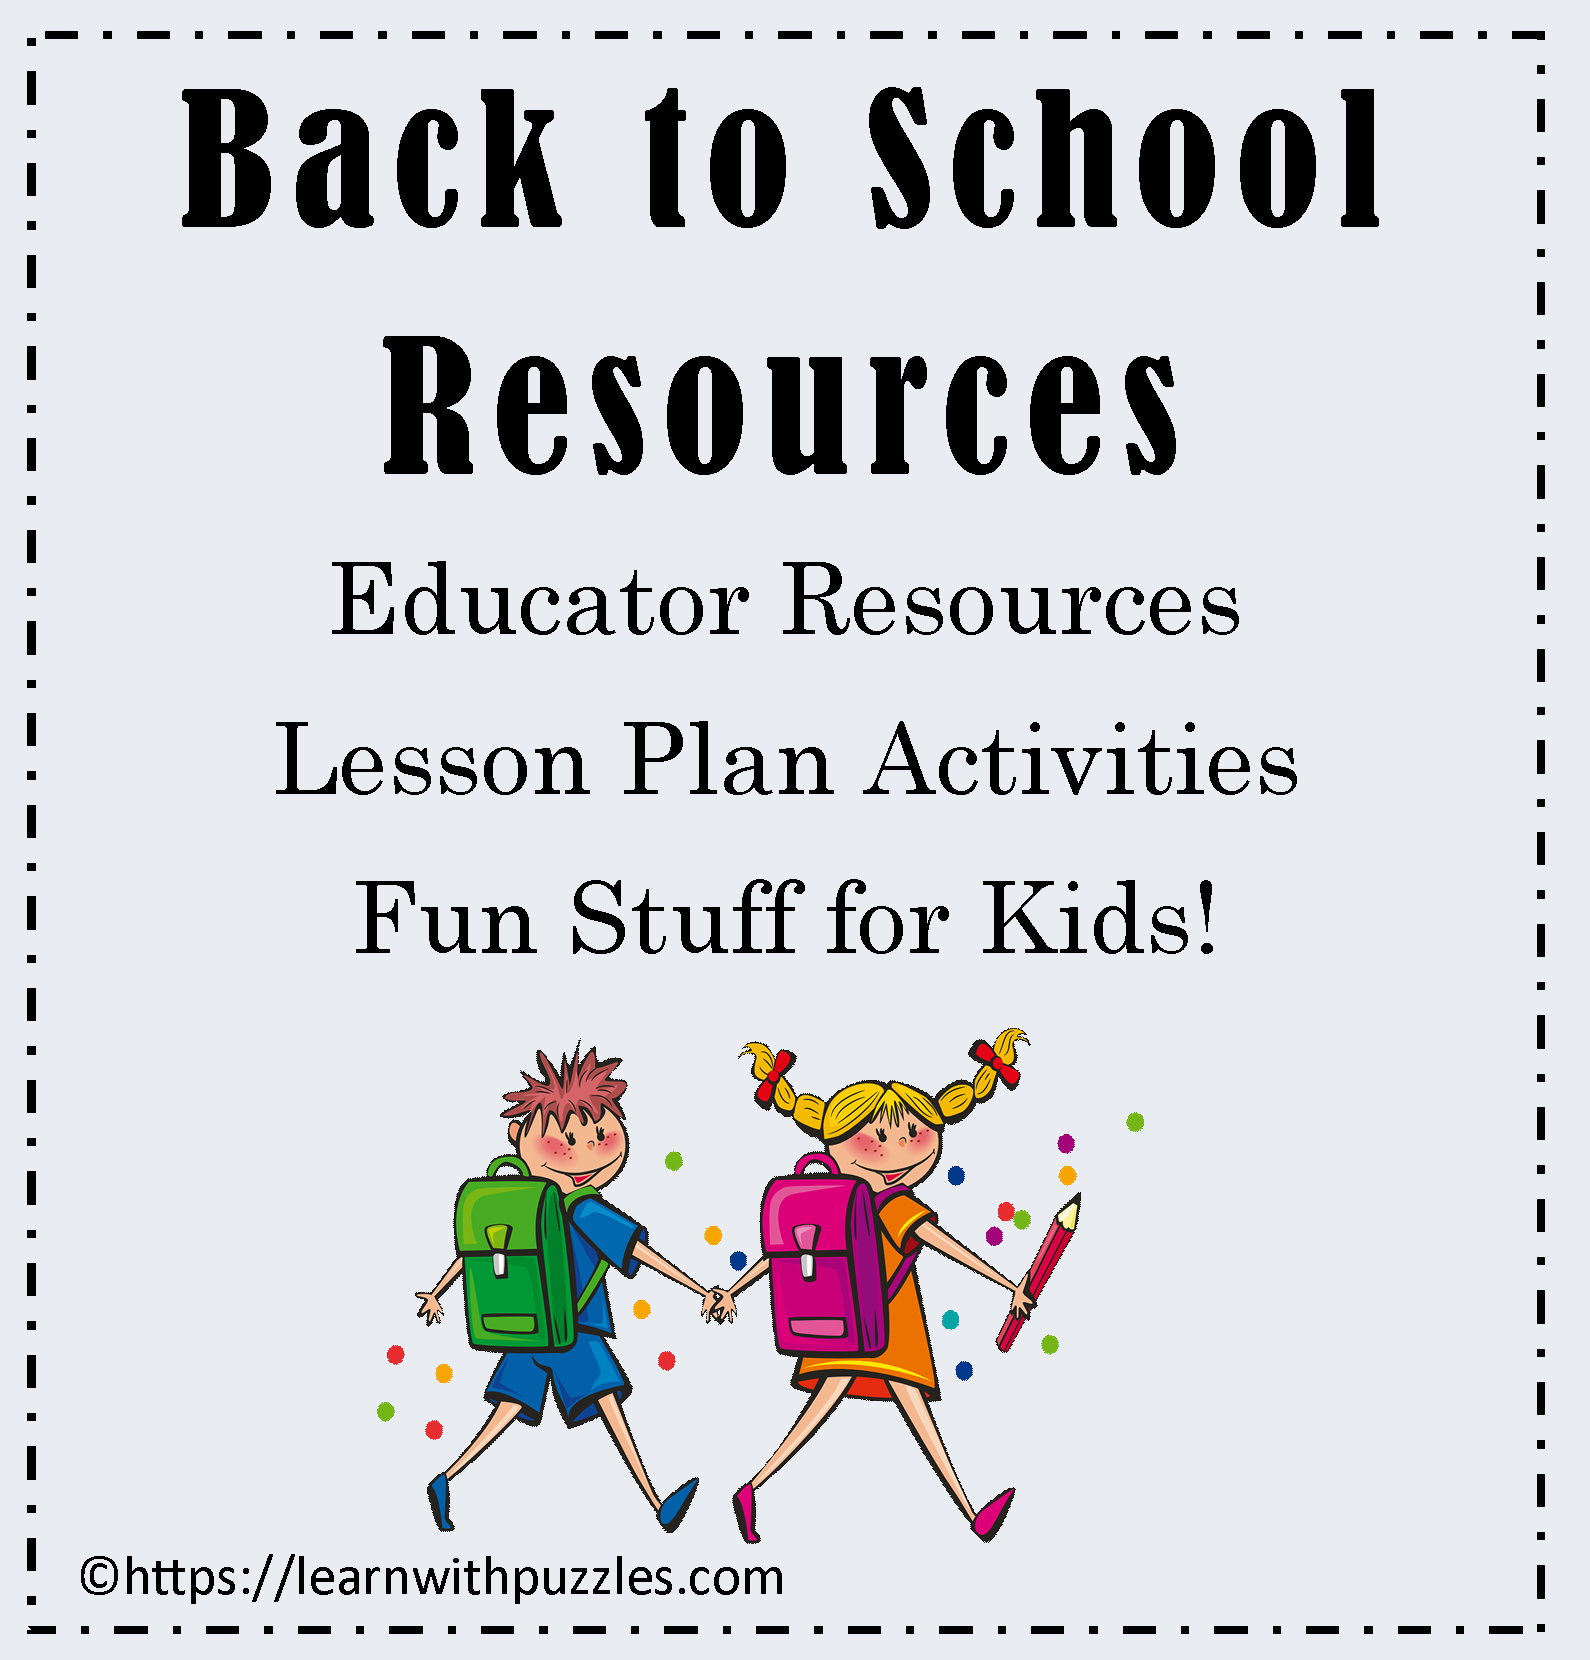 Are You An Educator Looking For Resources And Lesson Plan